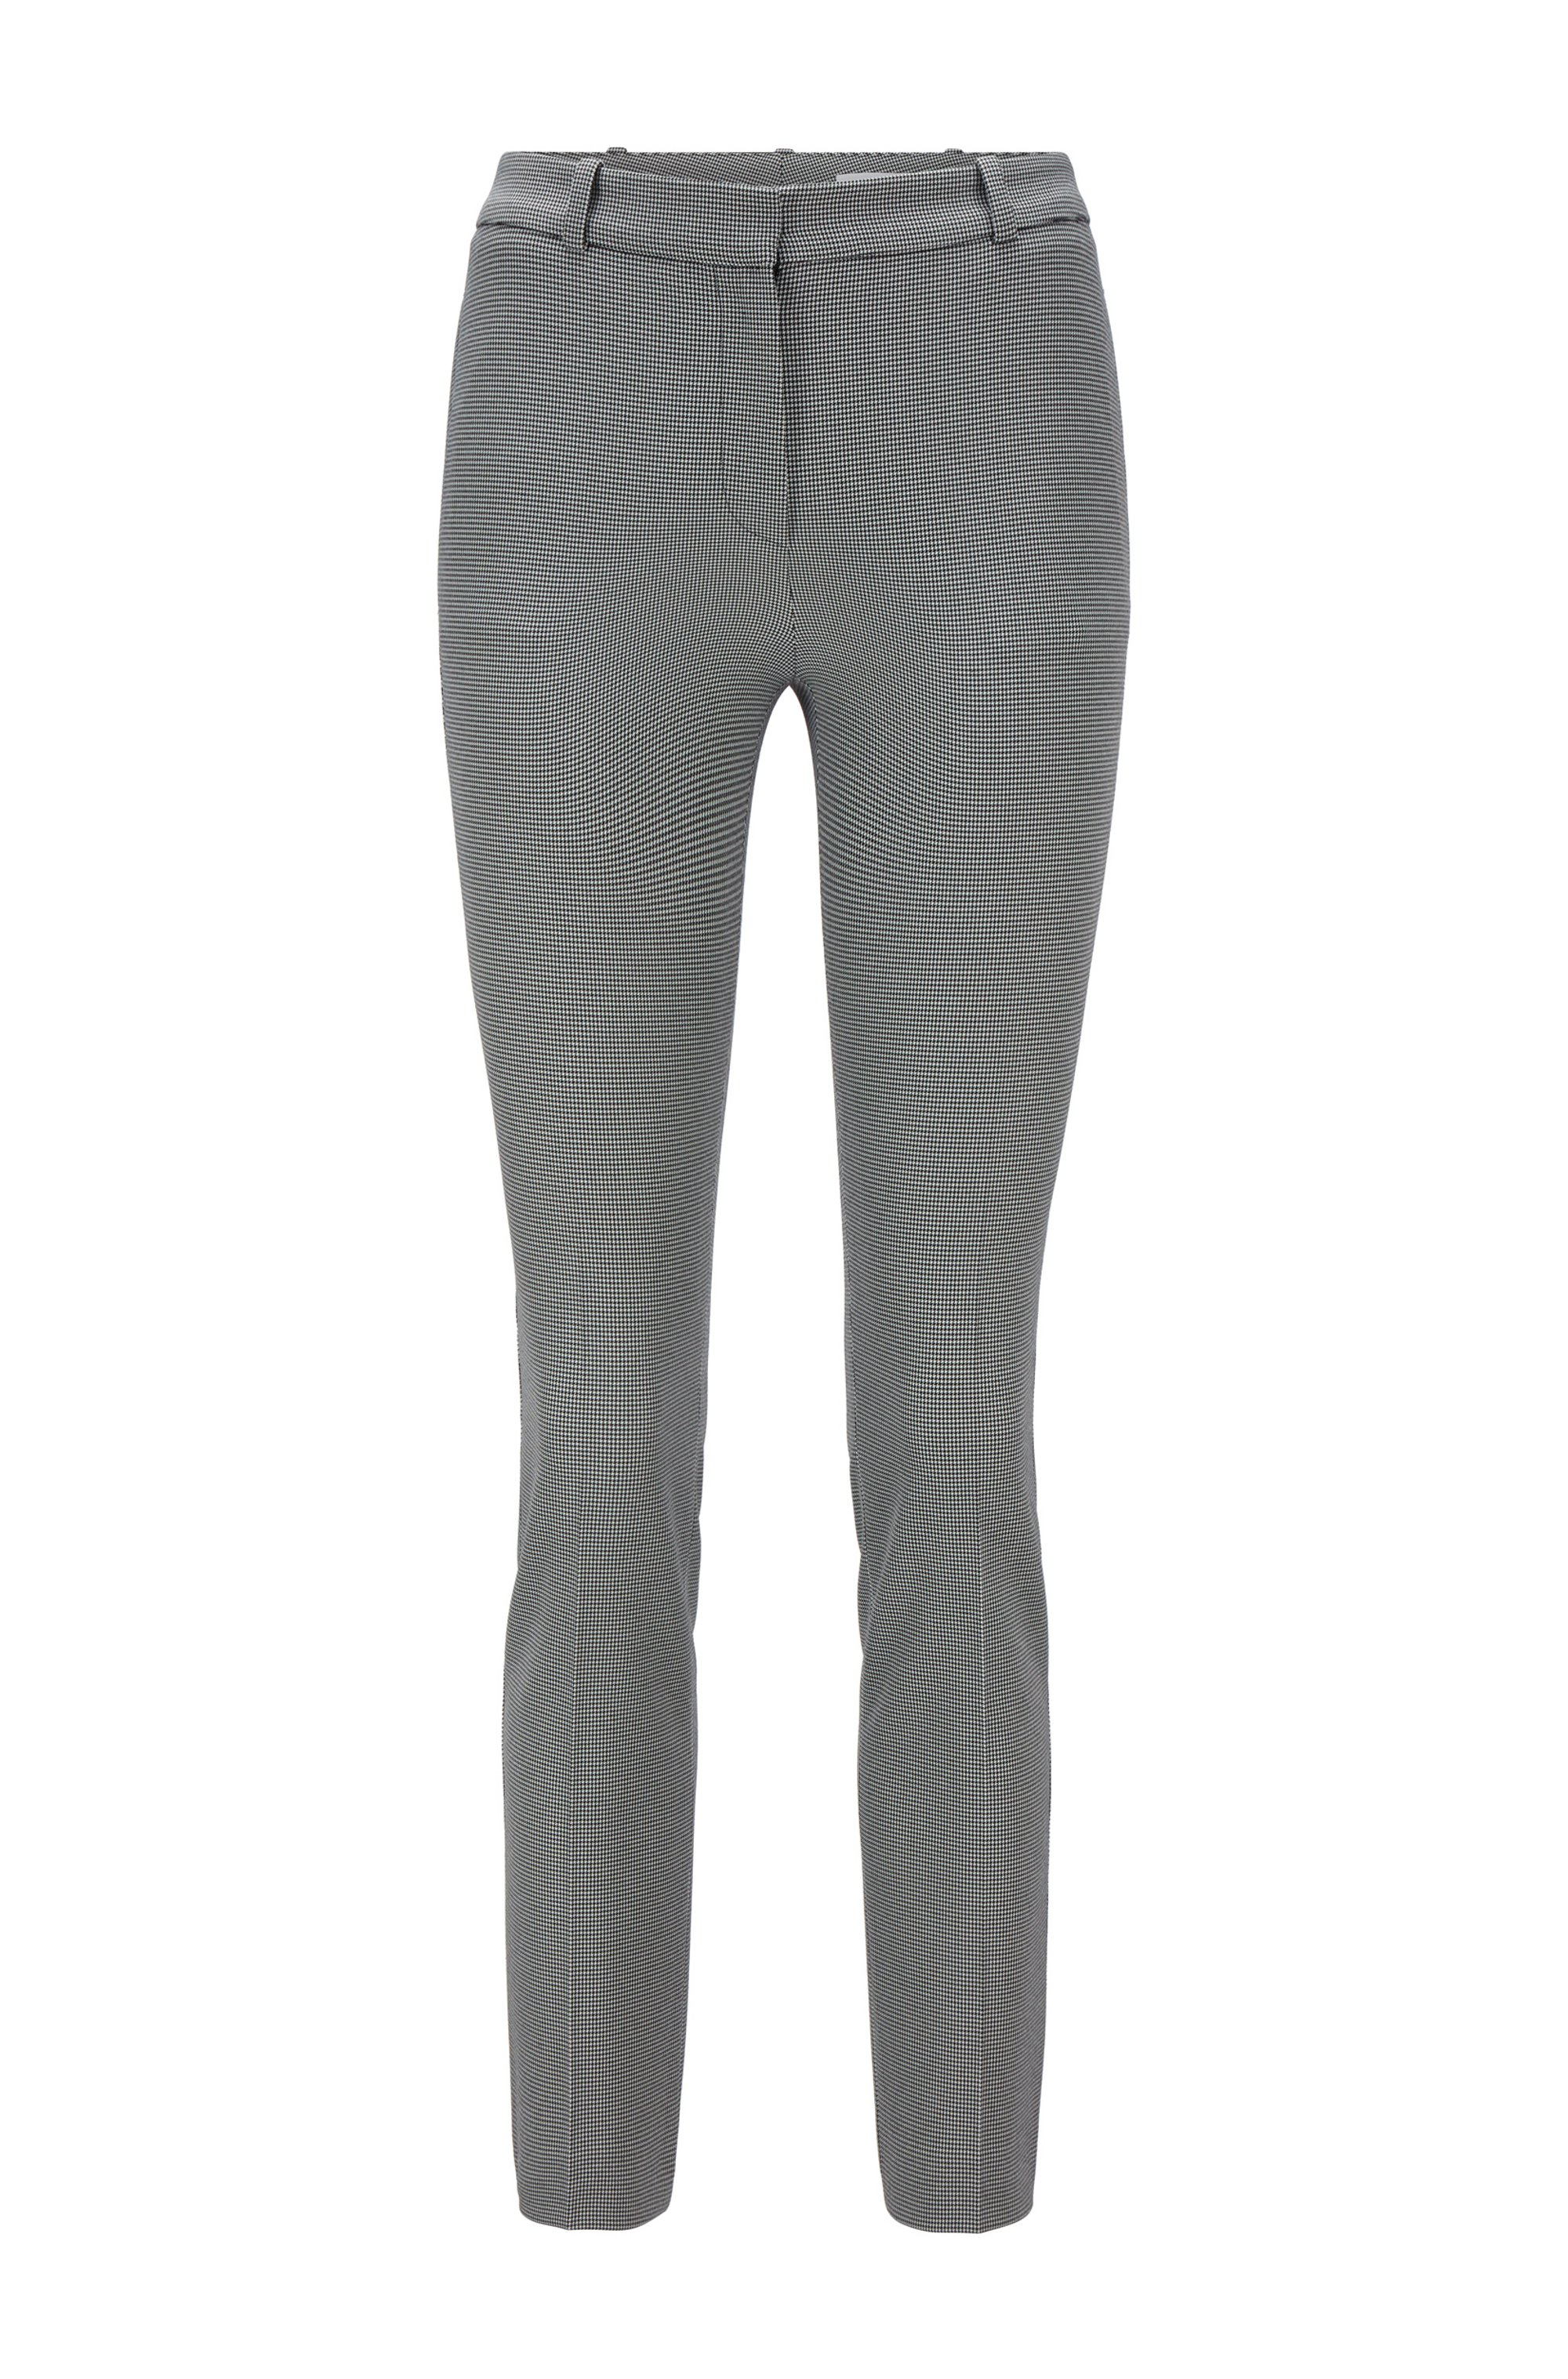 Cropped slim-fit pants in micro-houndstooth stretch fabric, Patterned